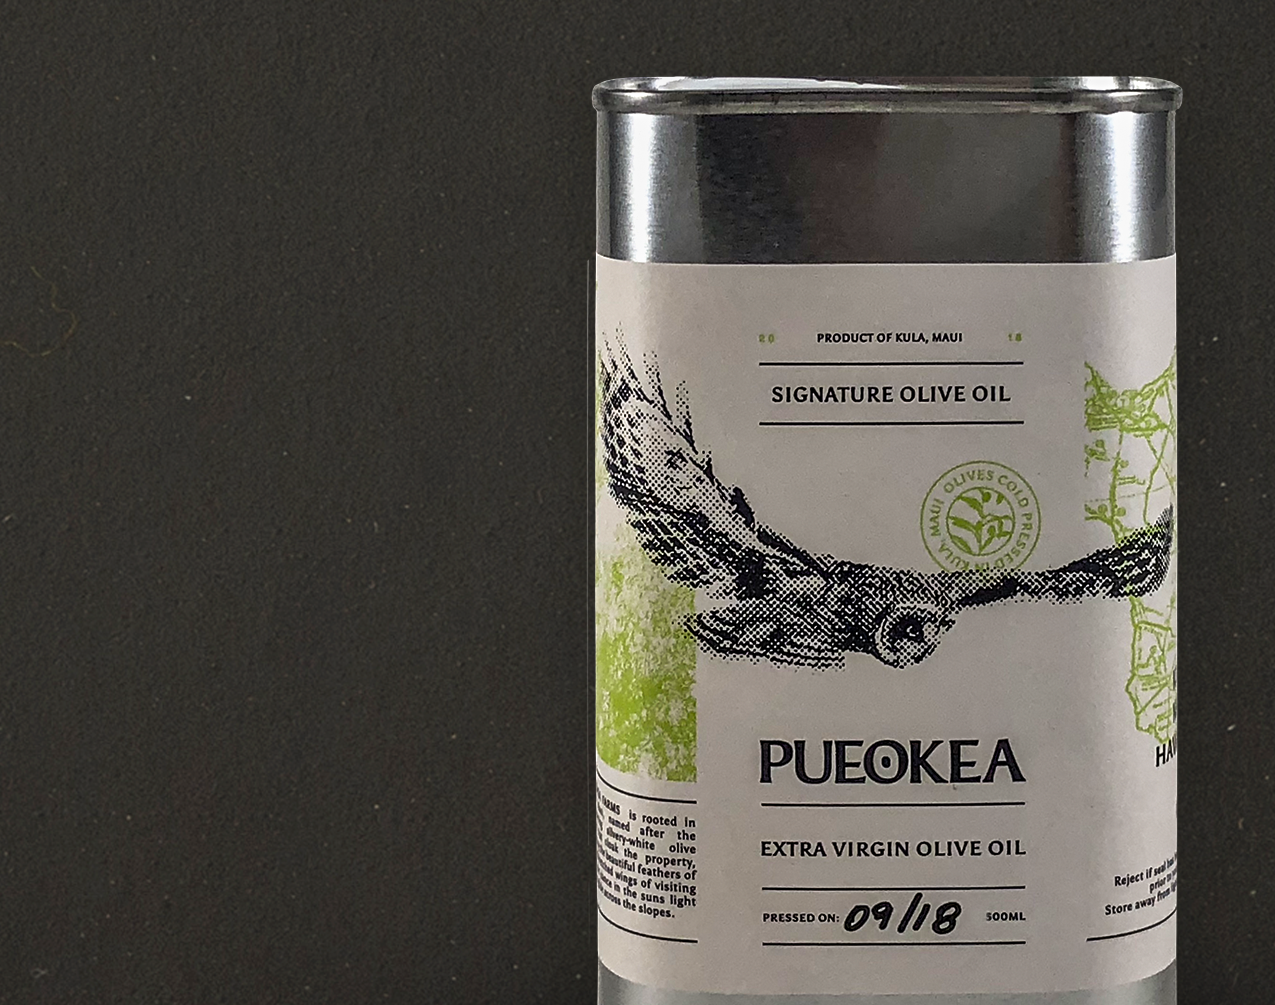 500mL - PueoKea's original, signature olive oil. Unflavored, cold-pressed.100% Extra Virgin